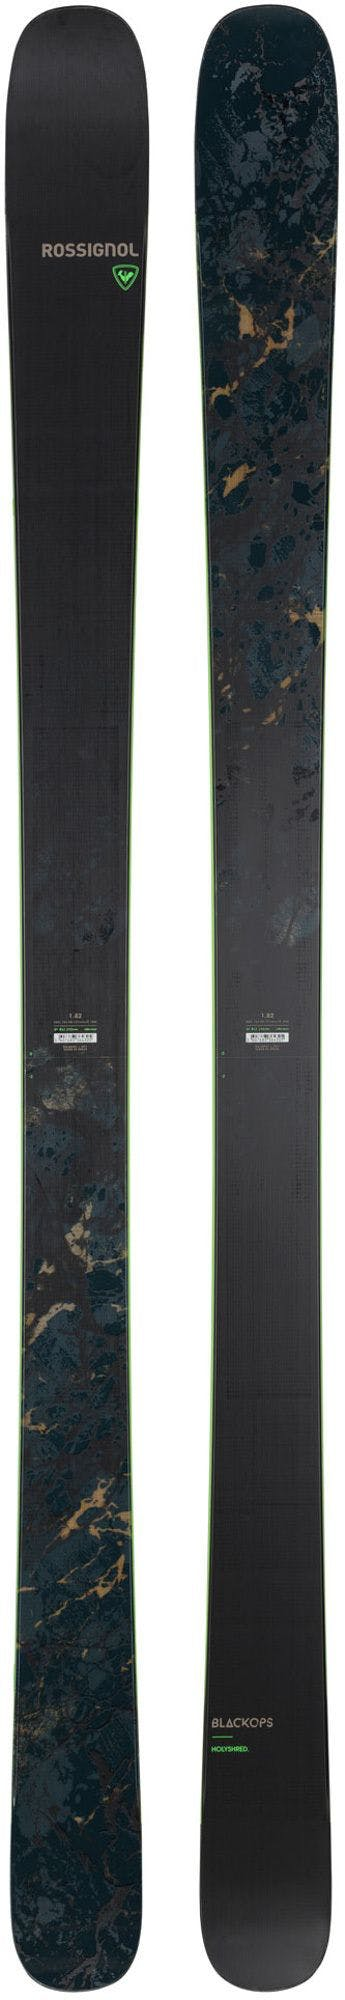 Rossignol Black Ops Holyshred Skis